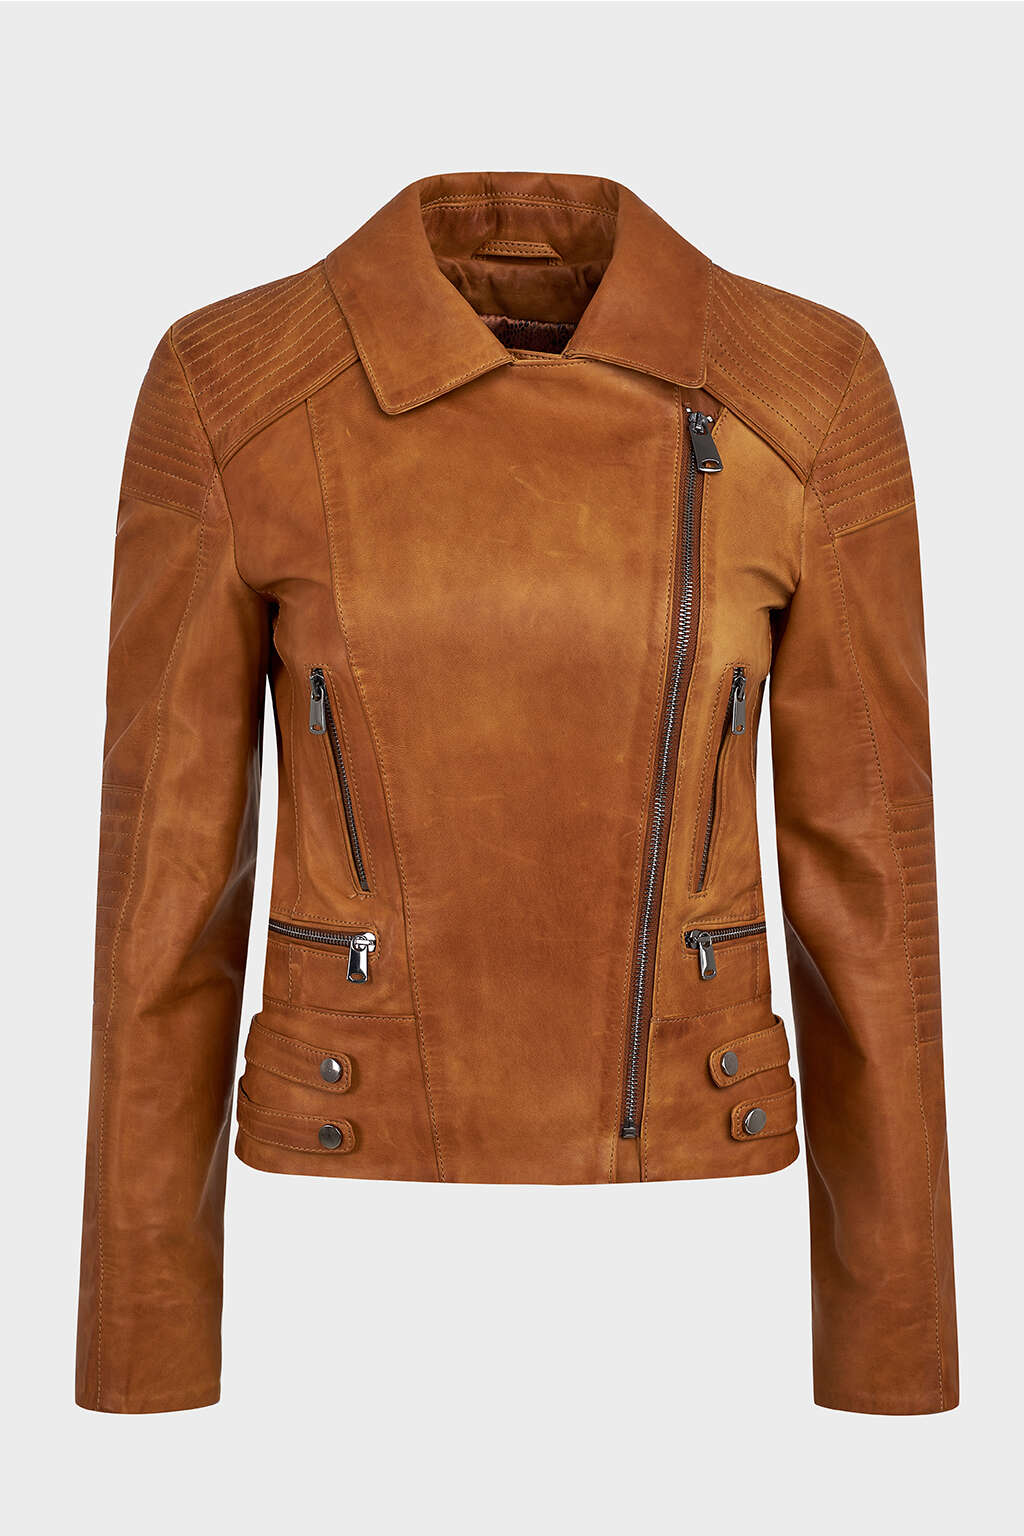 Front of Tawny Brown Classic Biker Leather Jacket